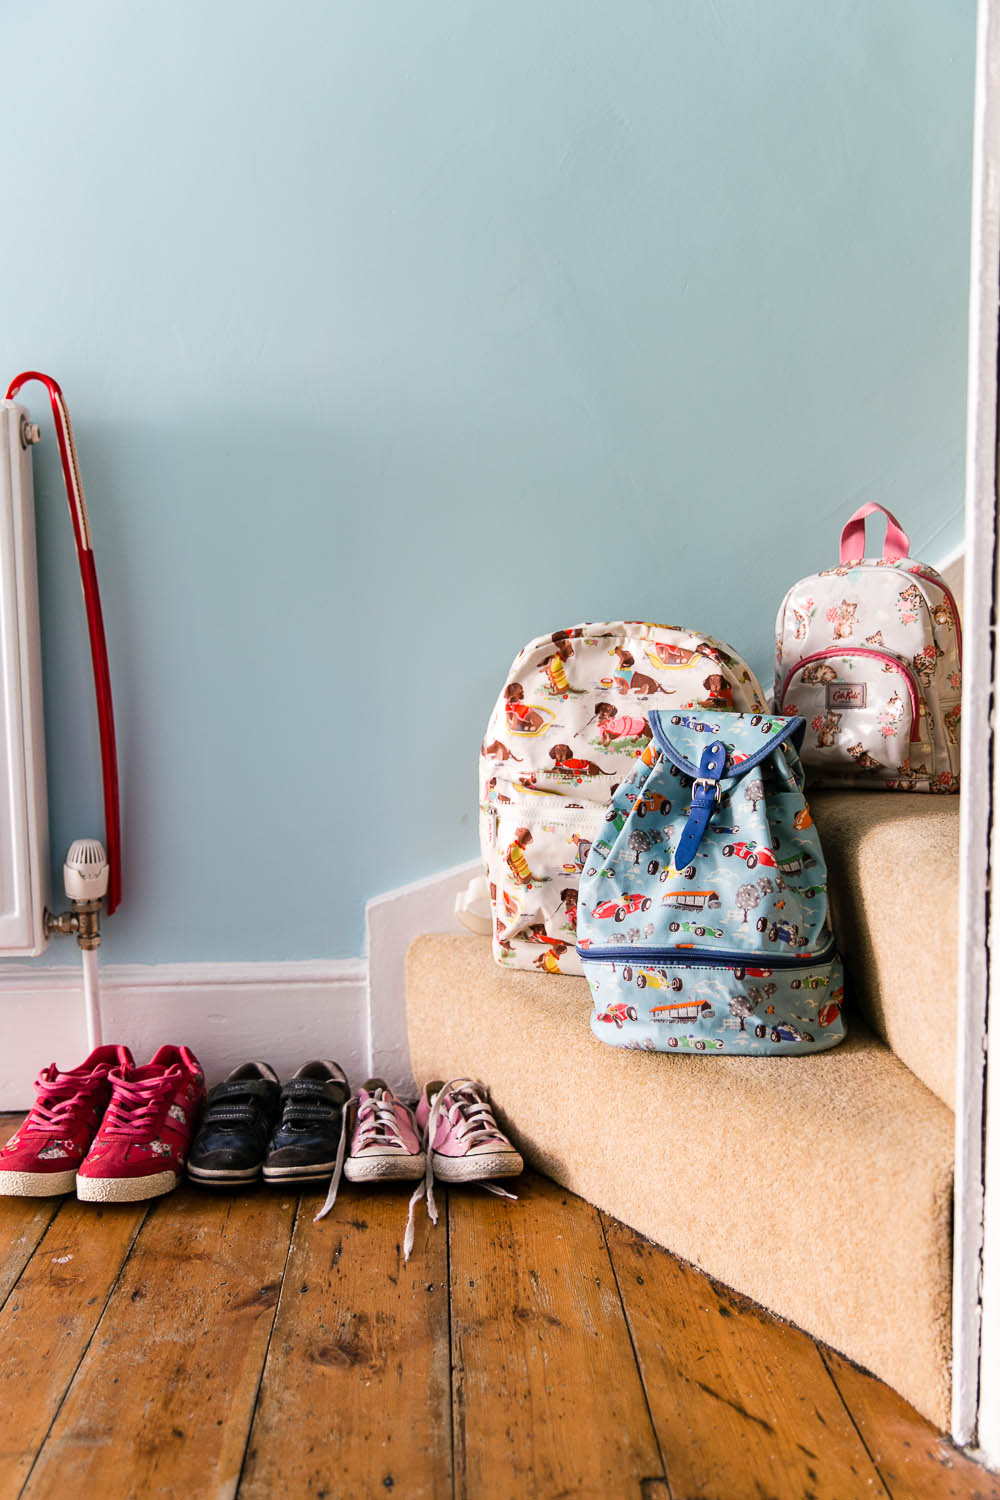 Cath Kidston #BagsToSchool at Housewife Confidential